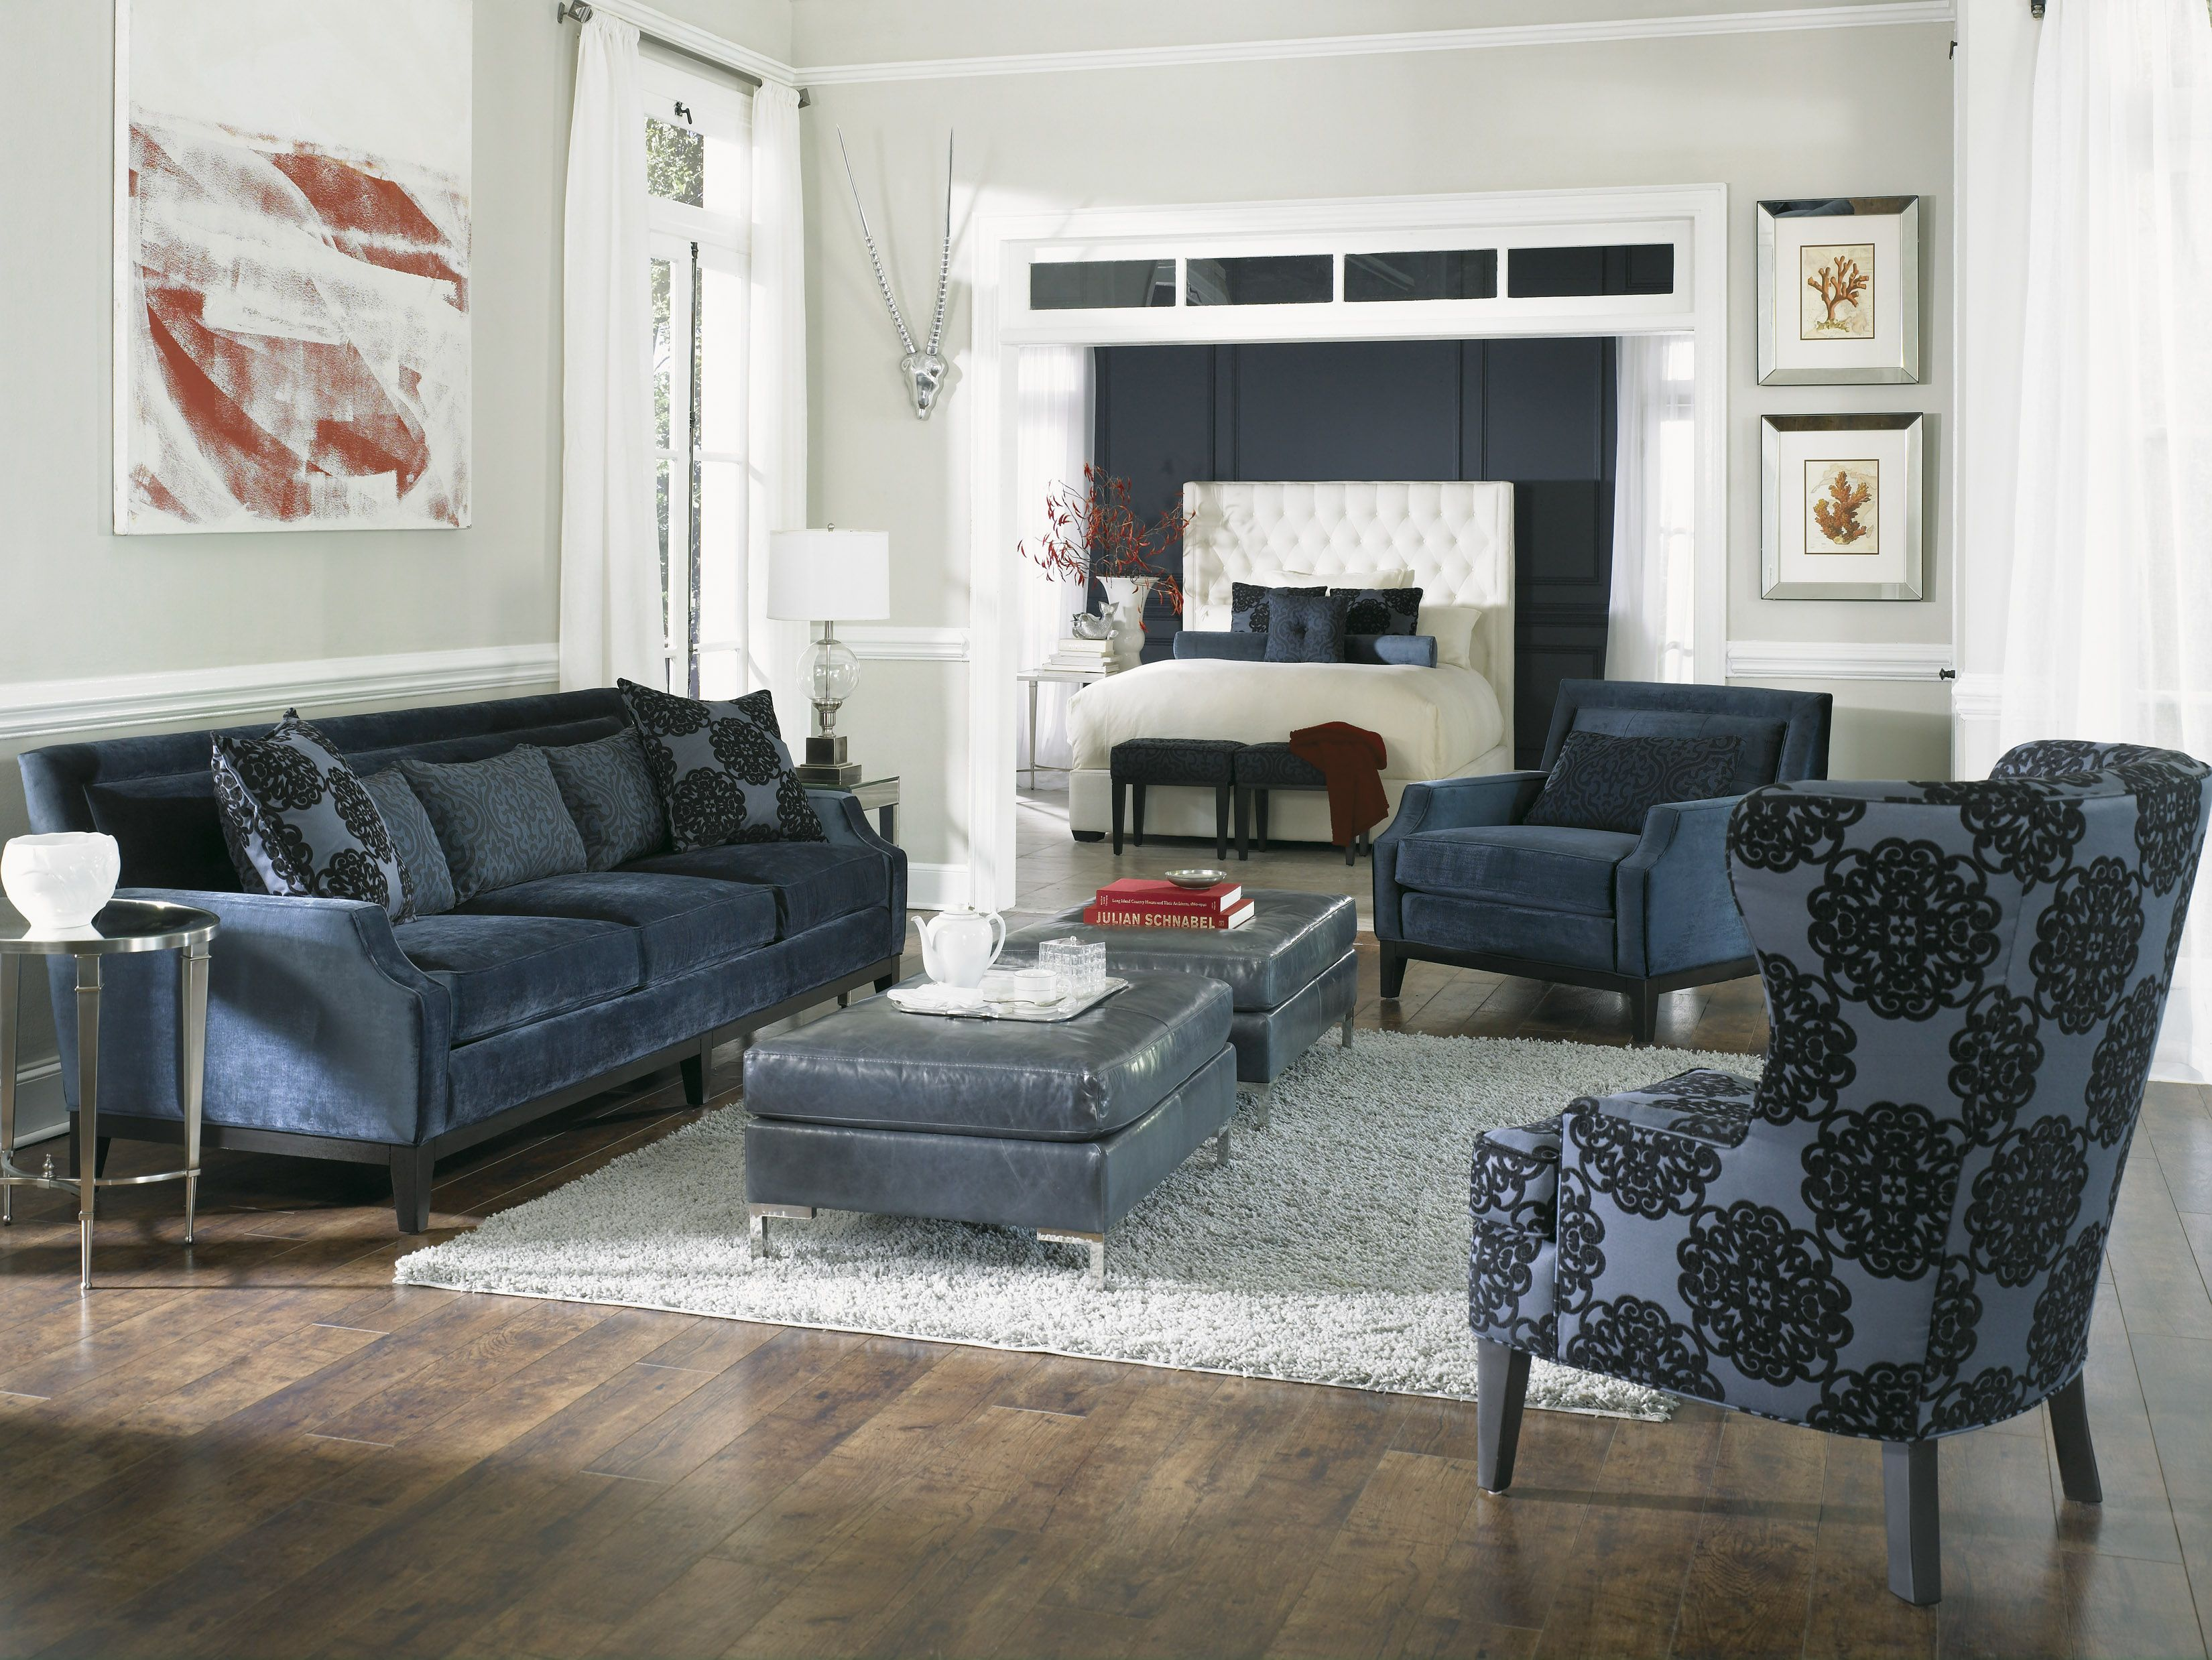 Rossdale Sofa loveseat chair & ottoman Accent chairs